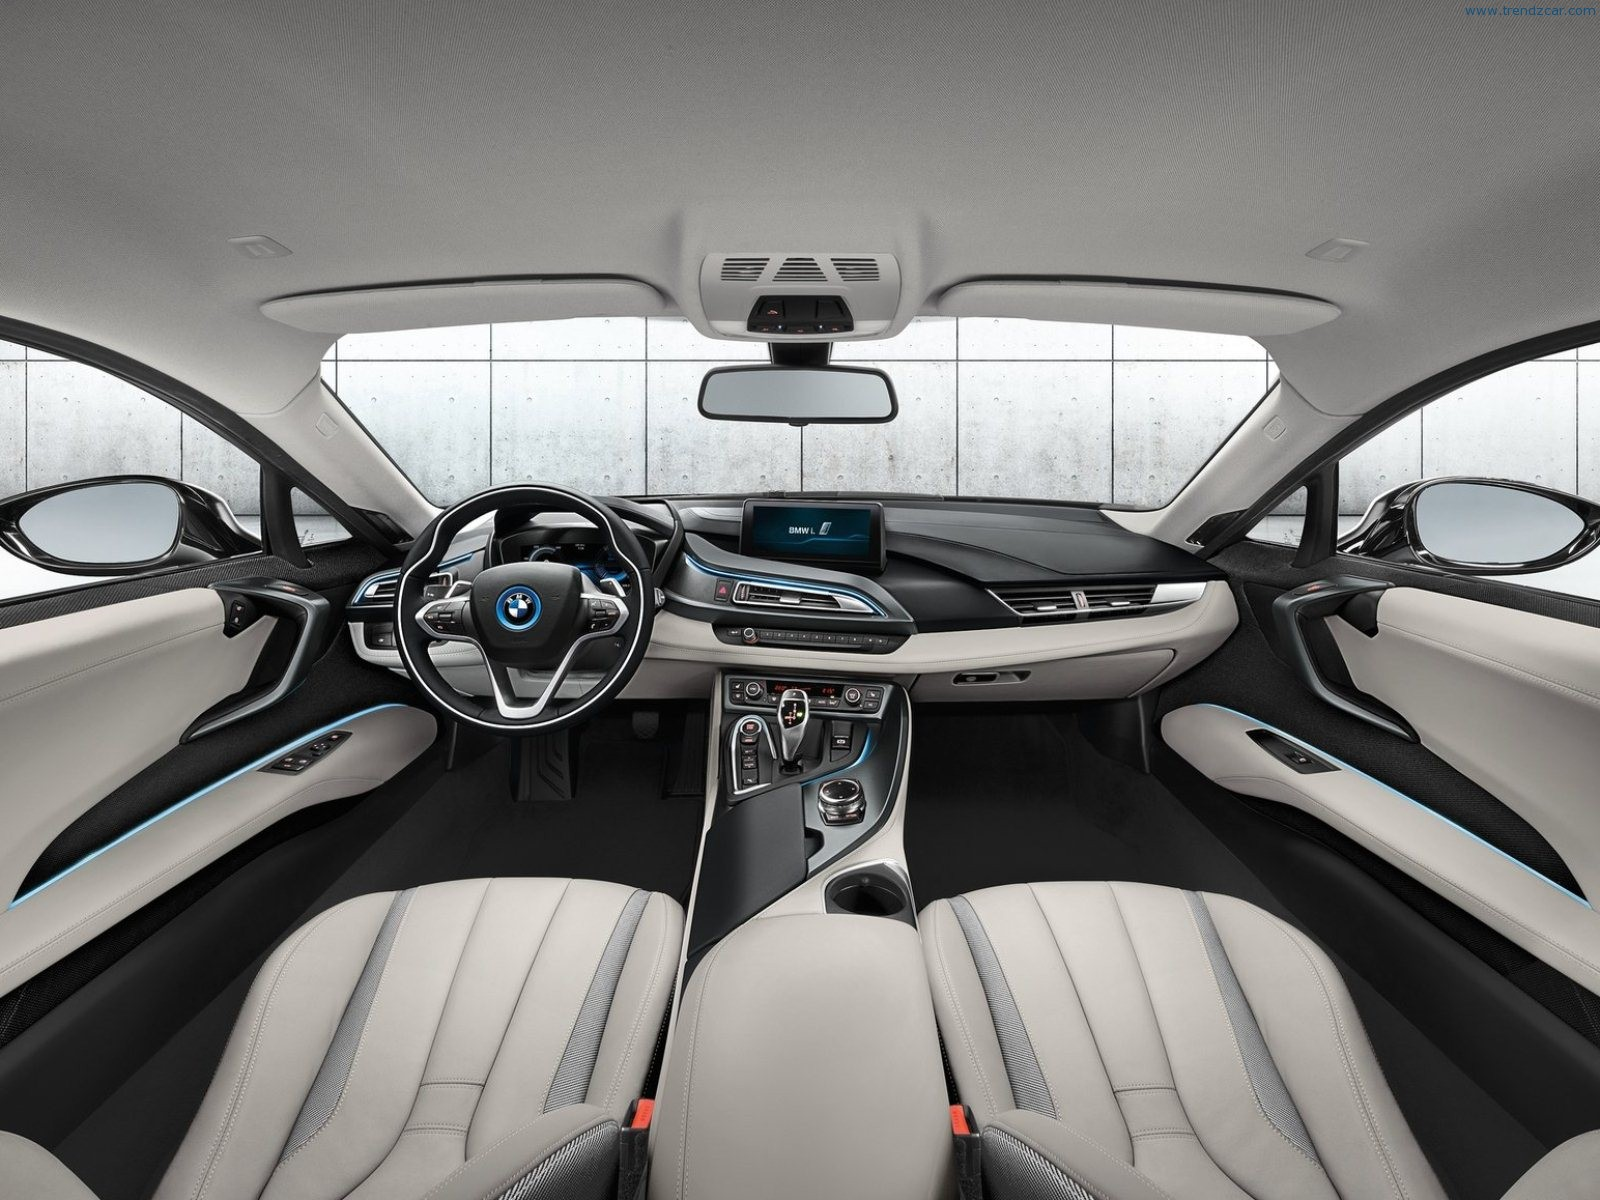 2015 bmw i8 pricing and options how expensive can it get for Bmw i8 interior